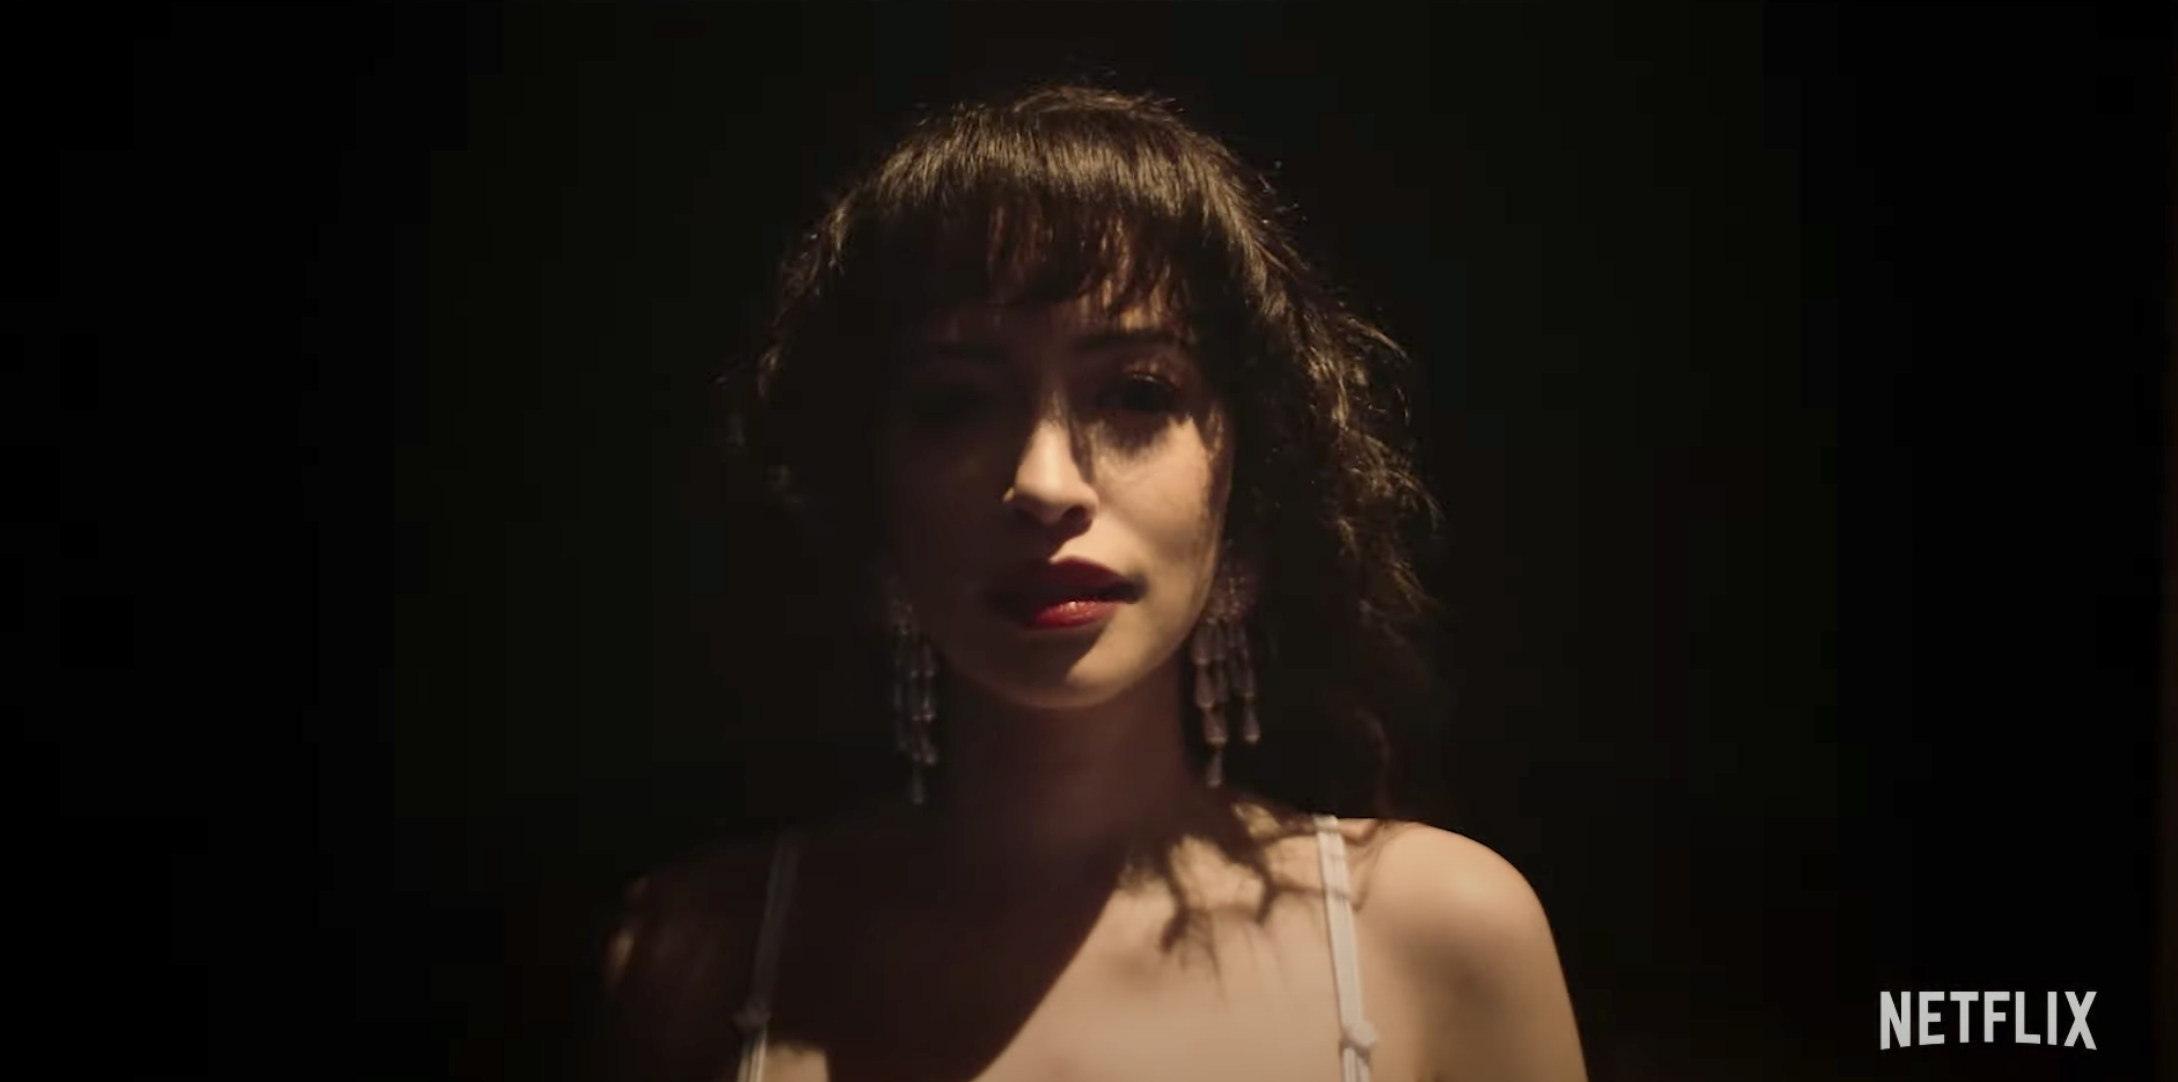 Christian Serratos as Selena right before she takes the stage